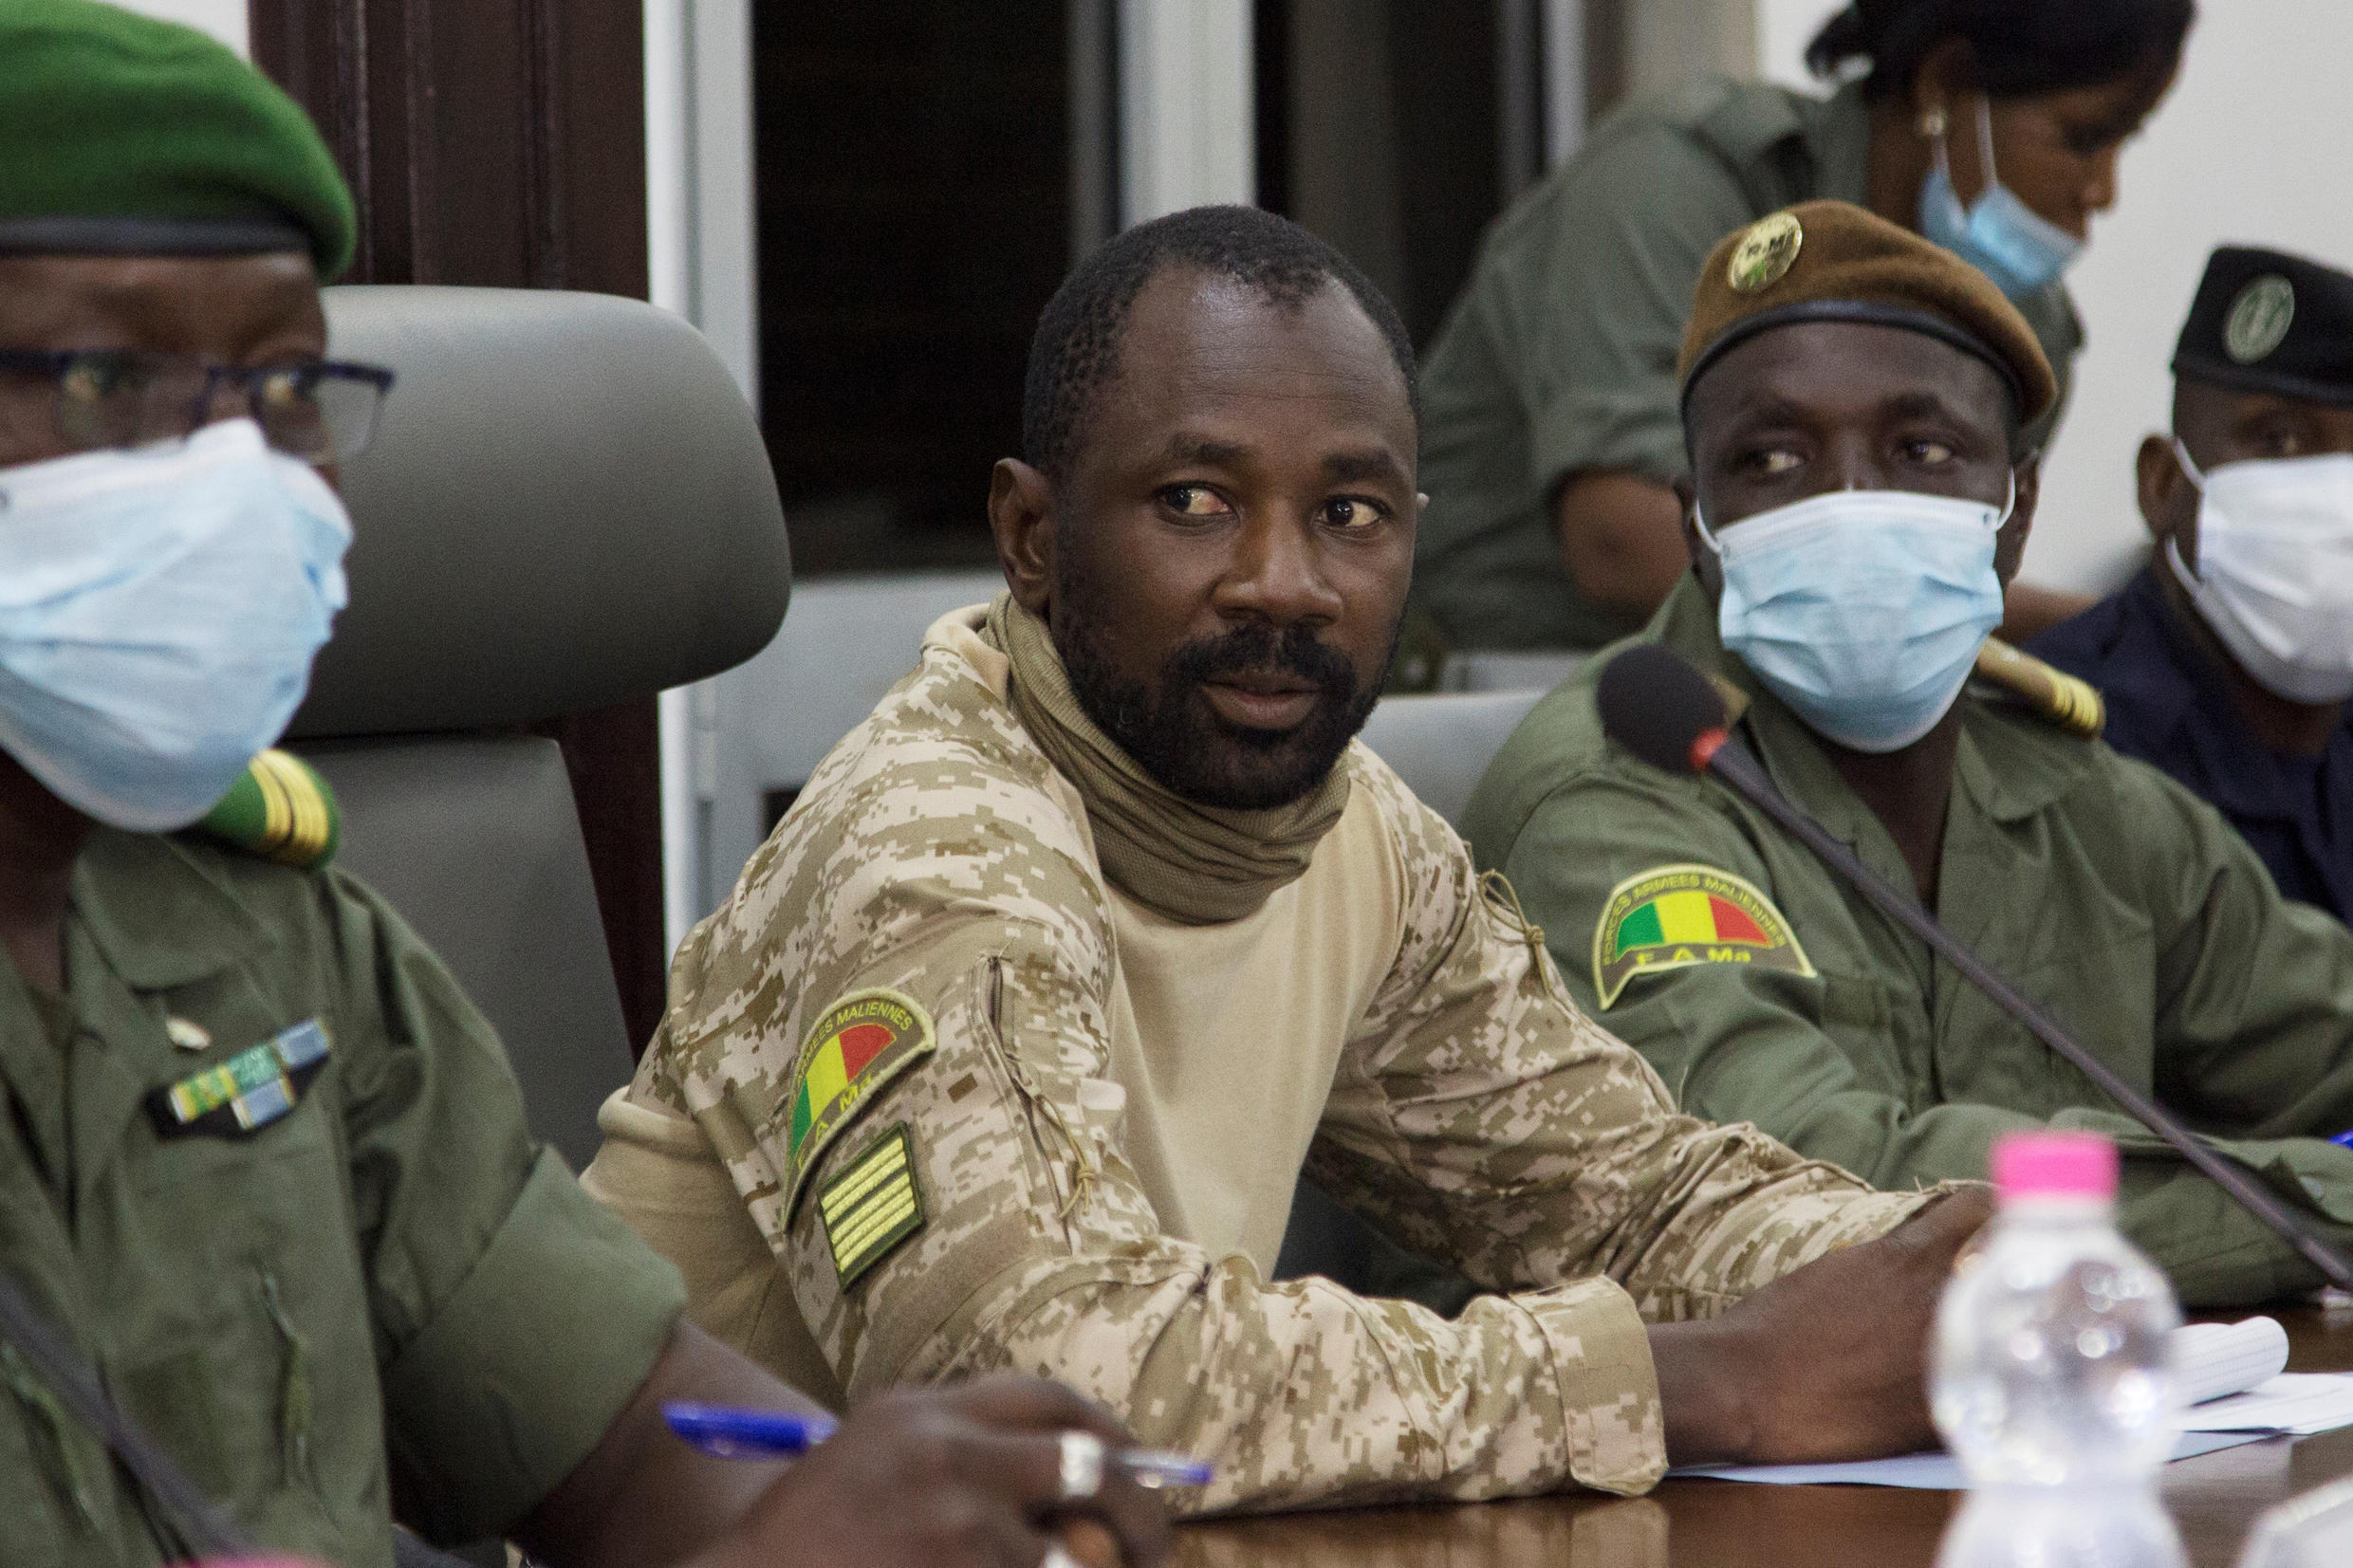 President of the CNSP (National Committee for the Salvation of the People) Assimi Goita (C) preparing for a meeting between Malian military leaders and an ECOWAS delegation headed by former Nigerian president in an aim to restore order after the military coup in Bamako.